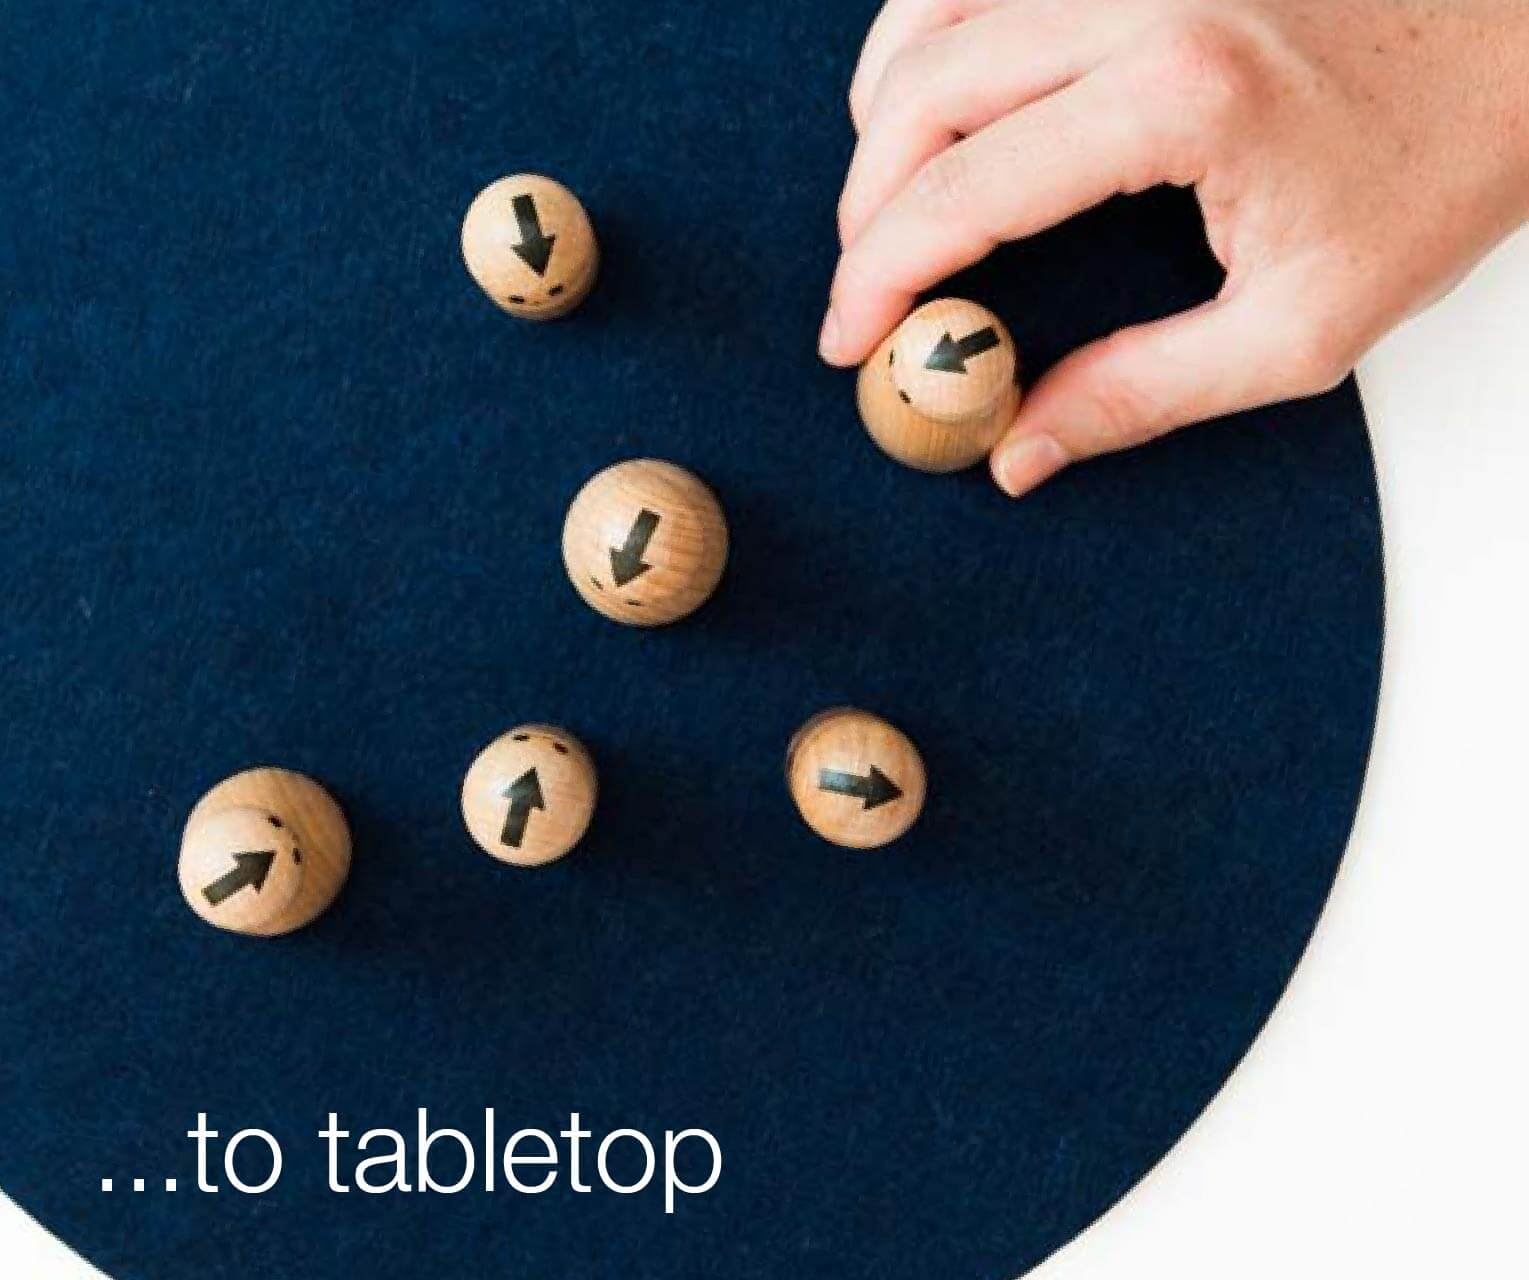 to tabletop